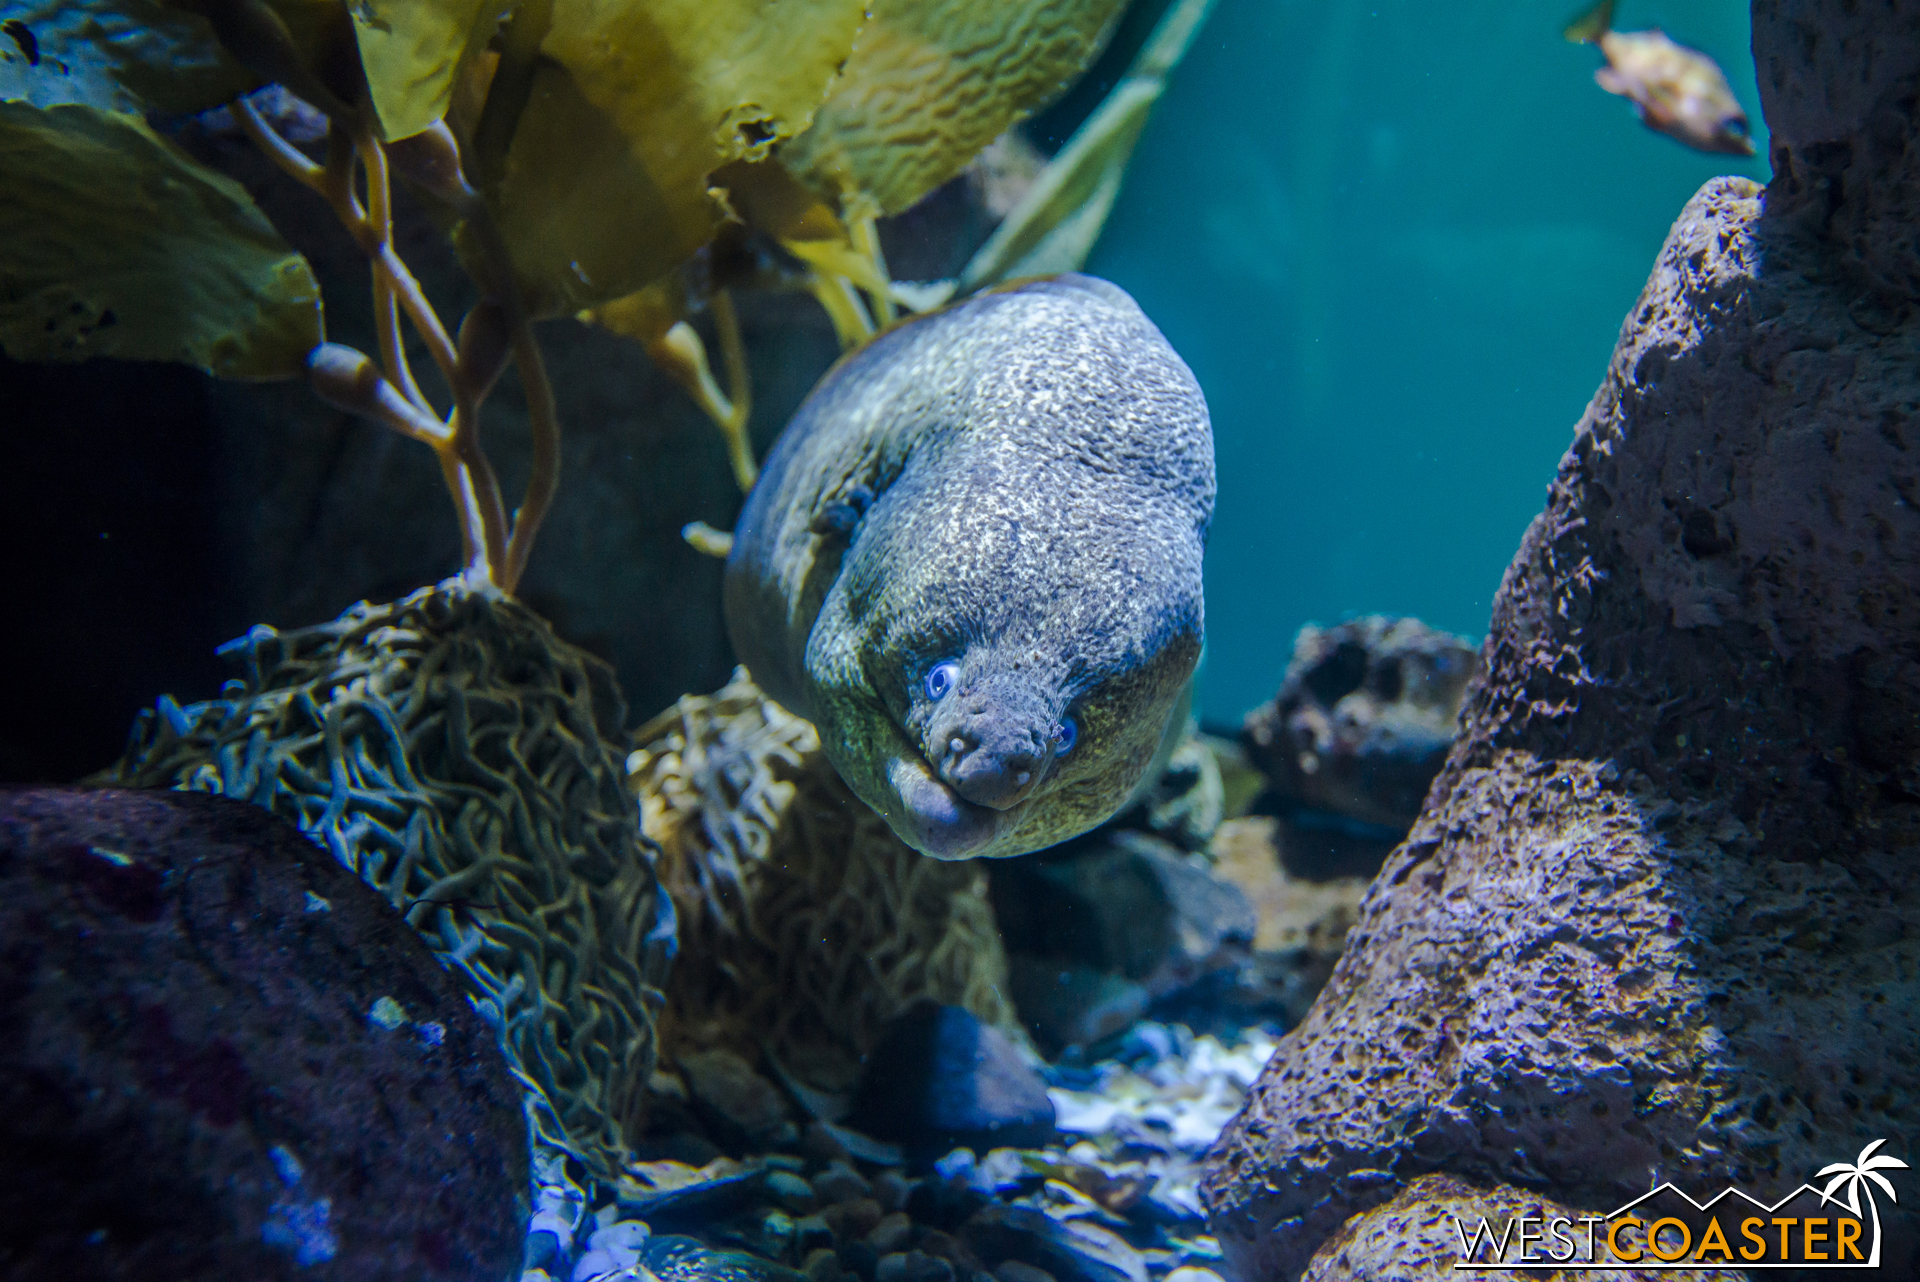 A California Moray Eel can be found in the Northern Pacific section.